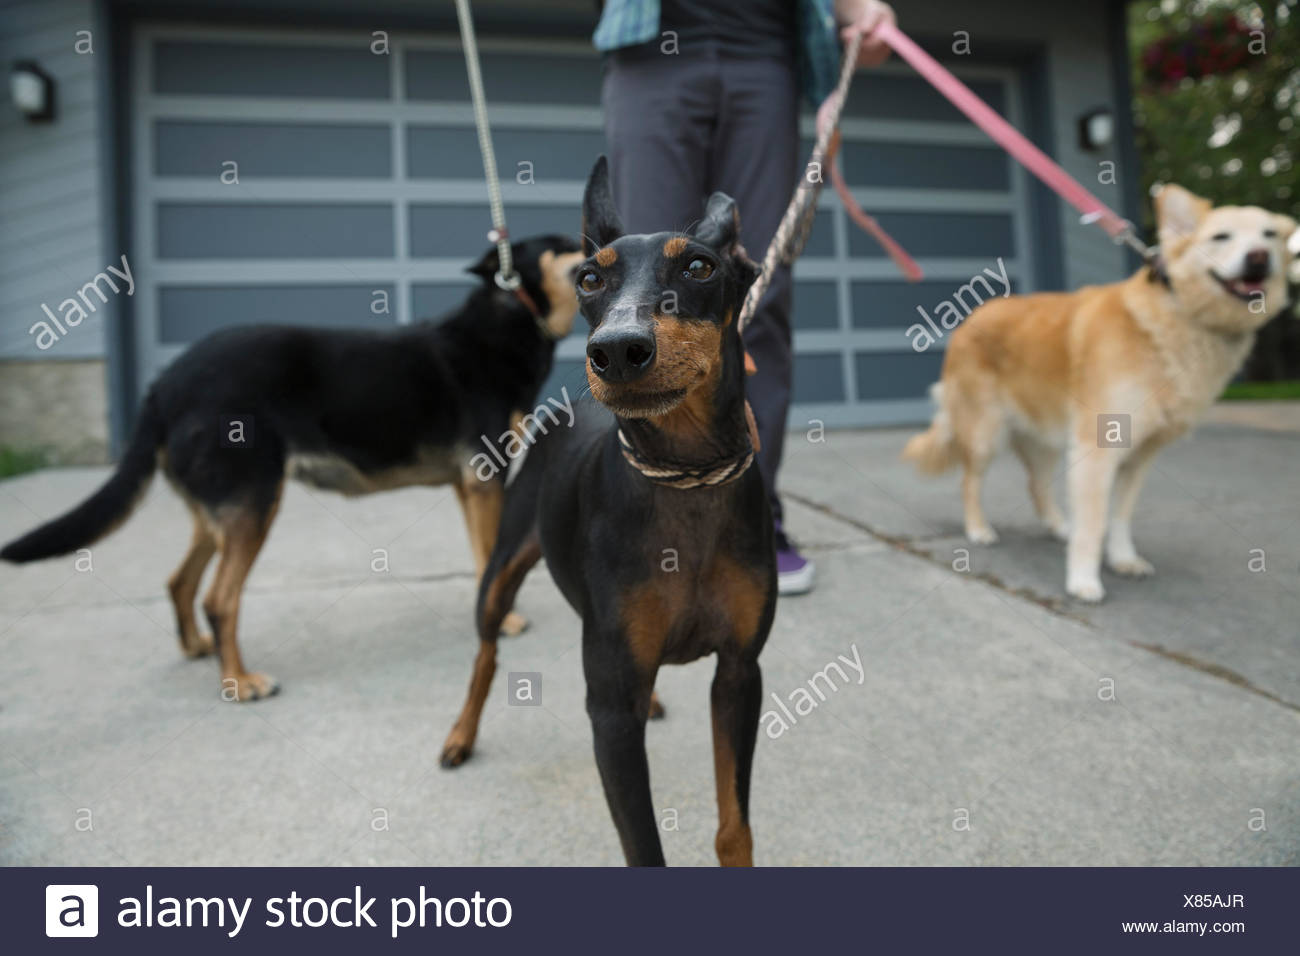 Man walking dogs on leashes in driveway - Stock Image